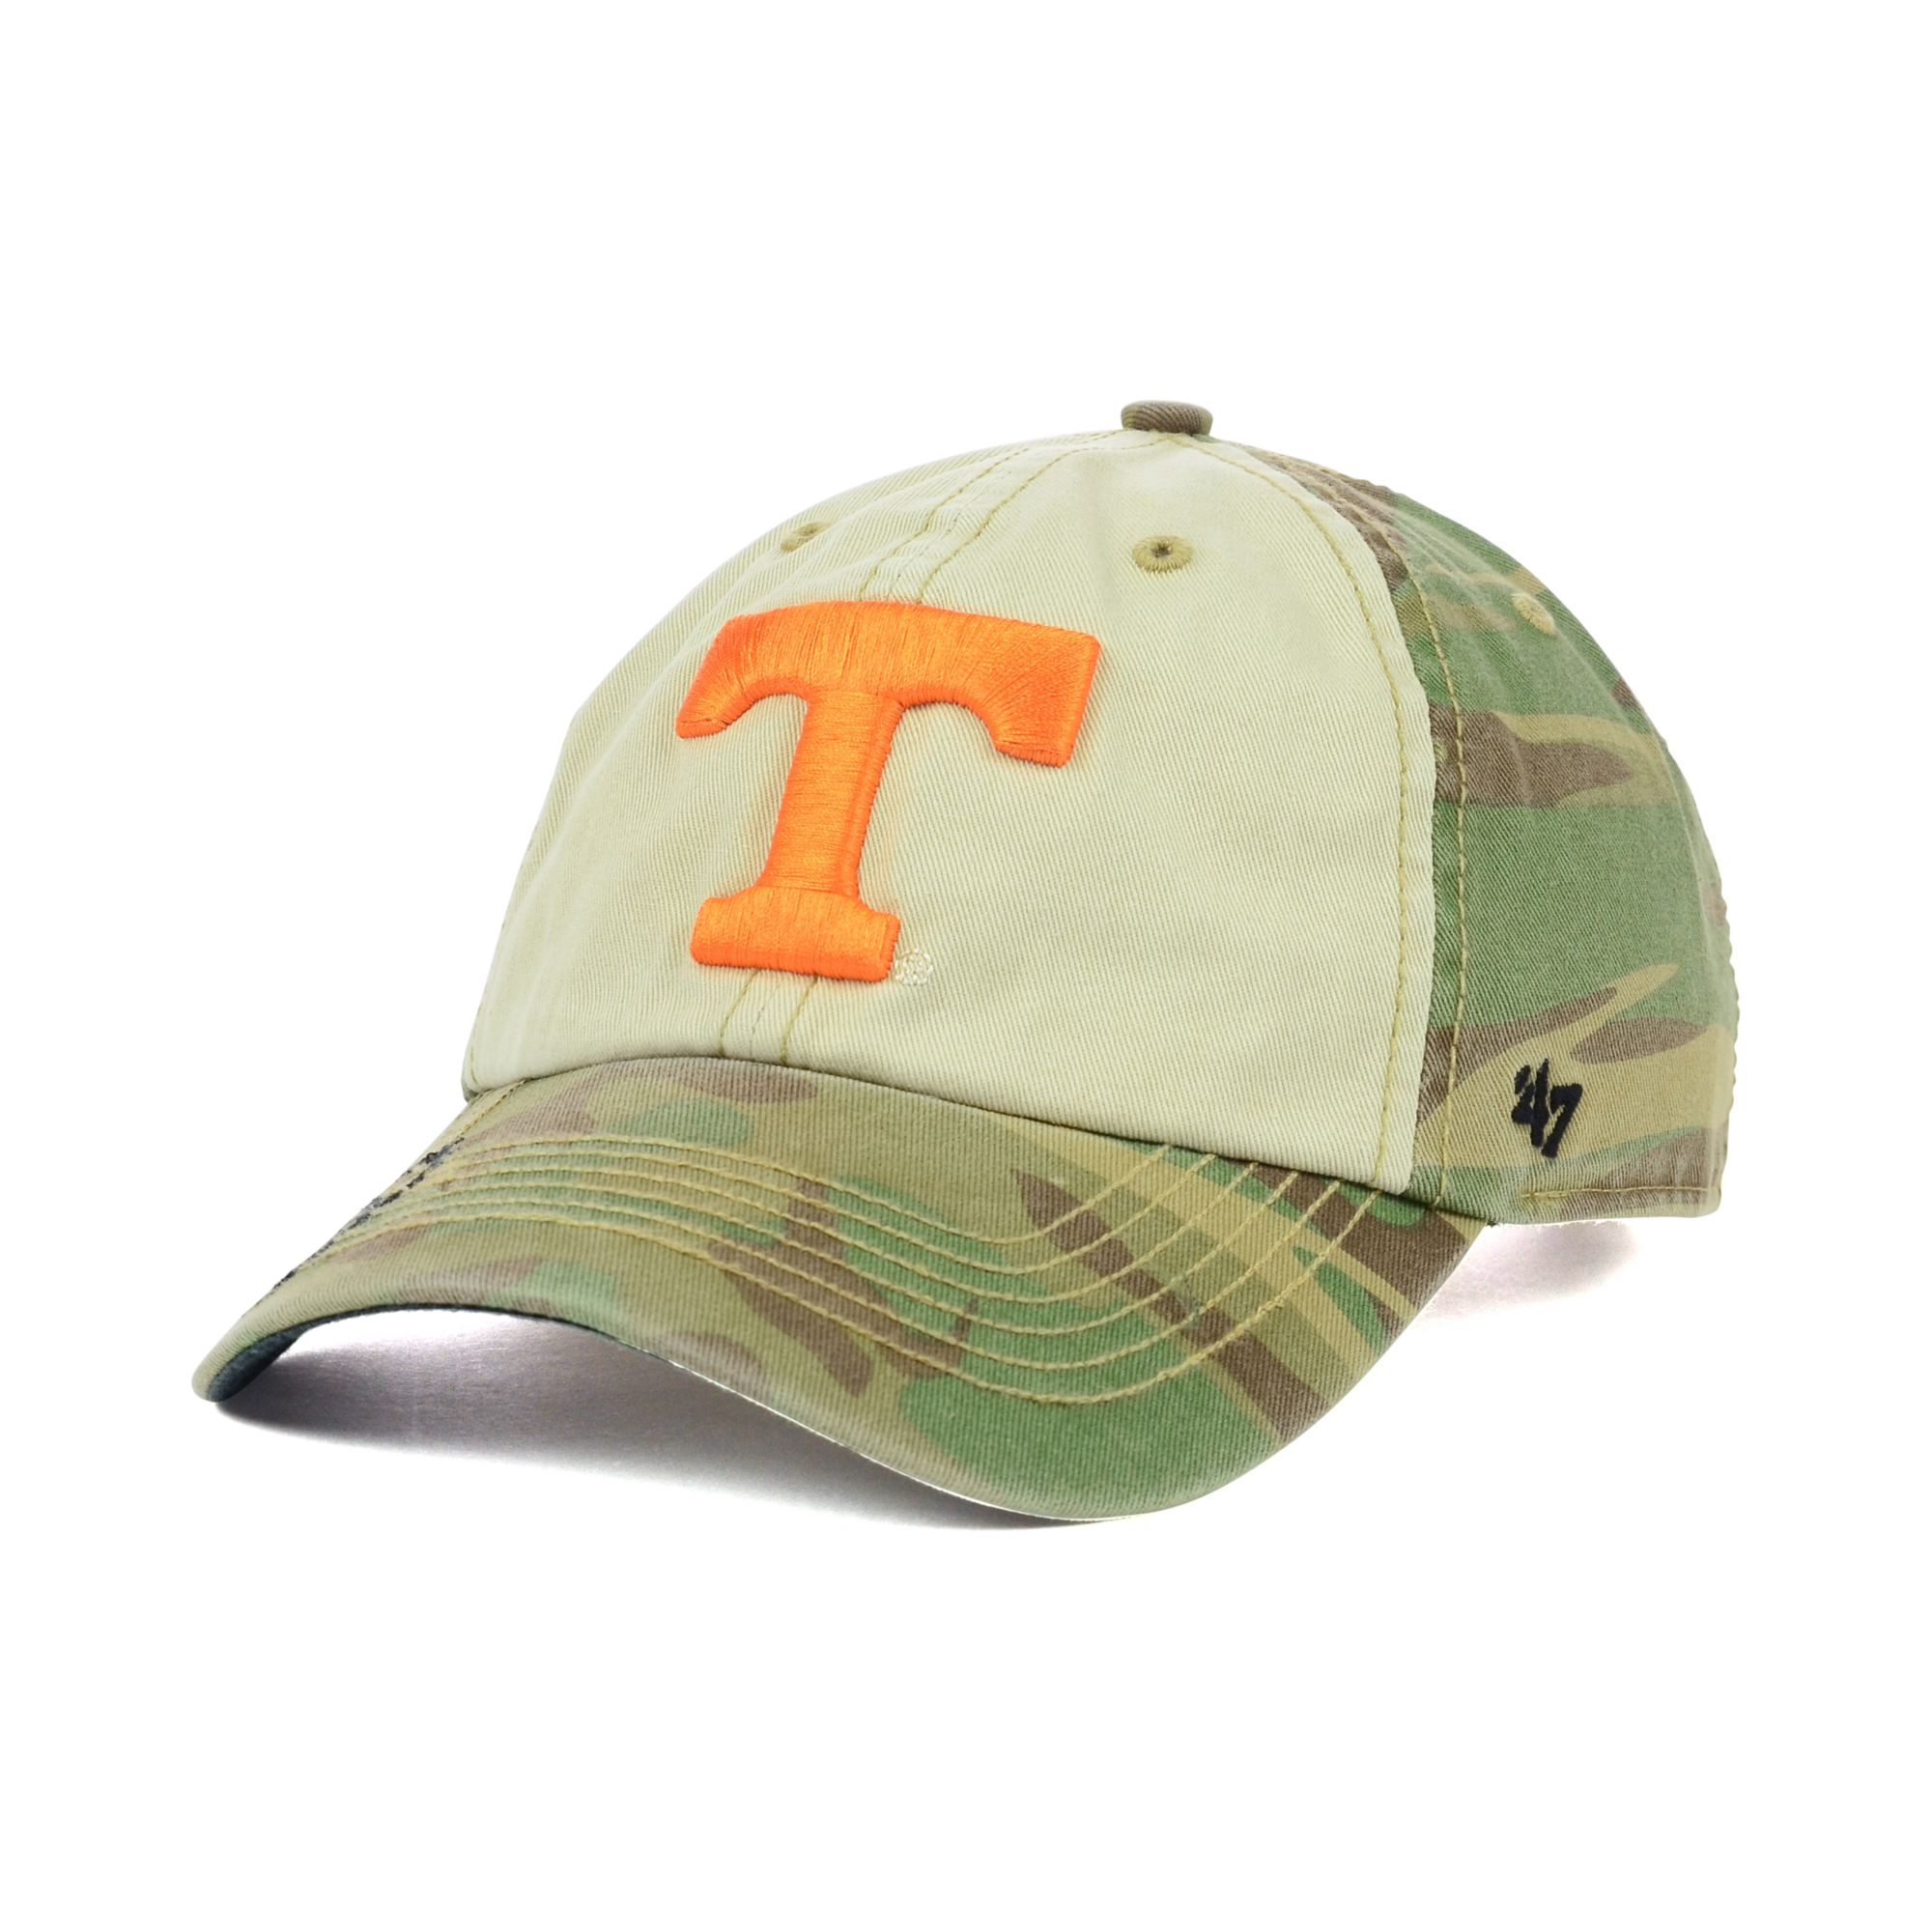 quality design f9094 afc46 Lyst - 47 Brand Tennessee Volunteers Ncaa Oht Gordie Clean Up ...